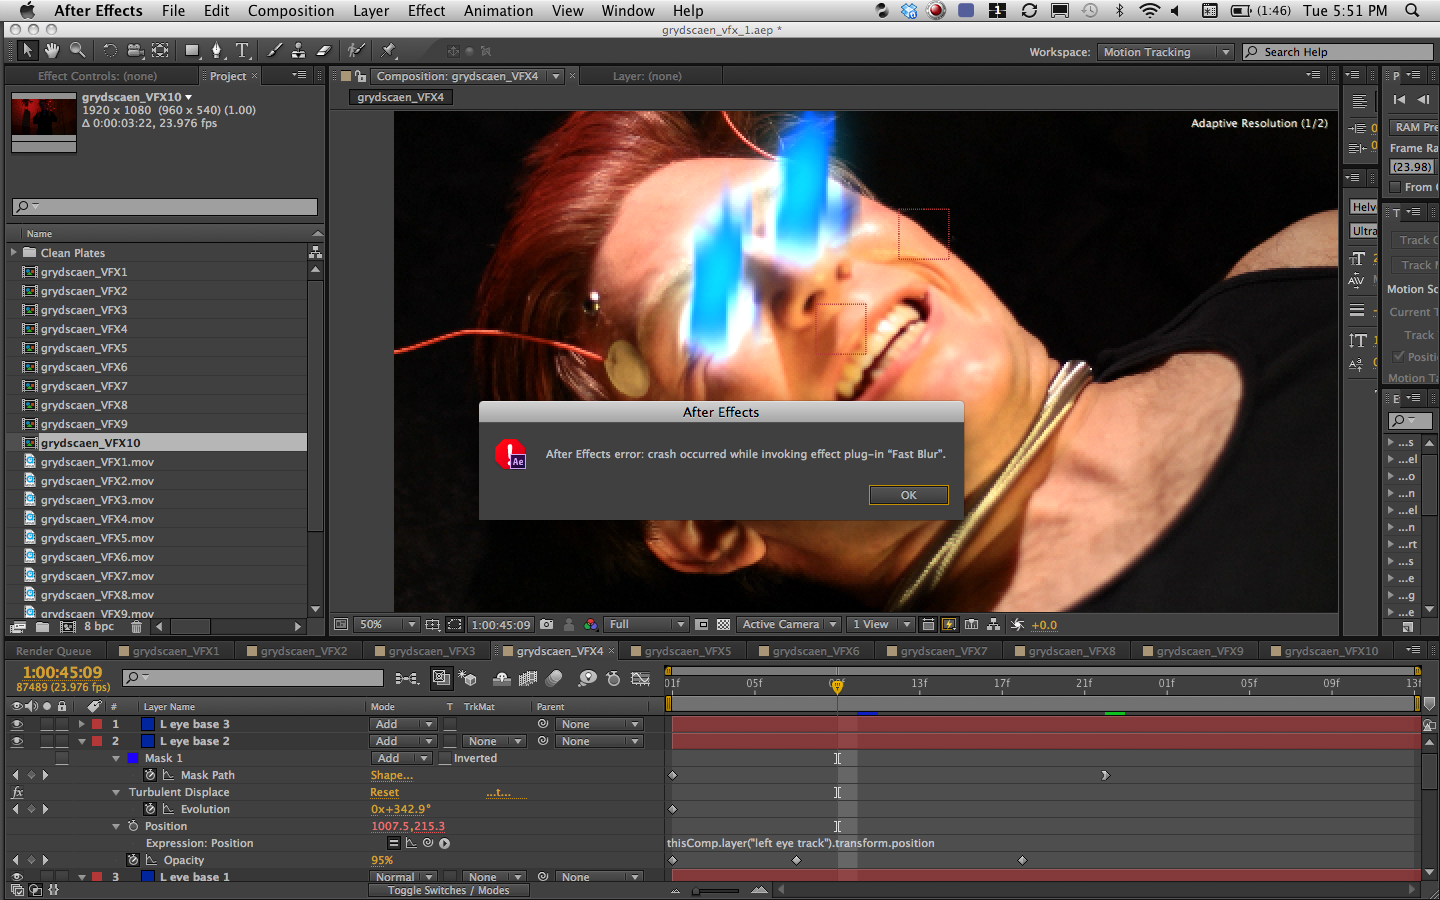 AE CS6 failing on \'fast blur\' : Adobe After Effects.